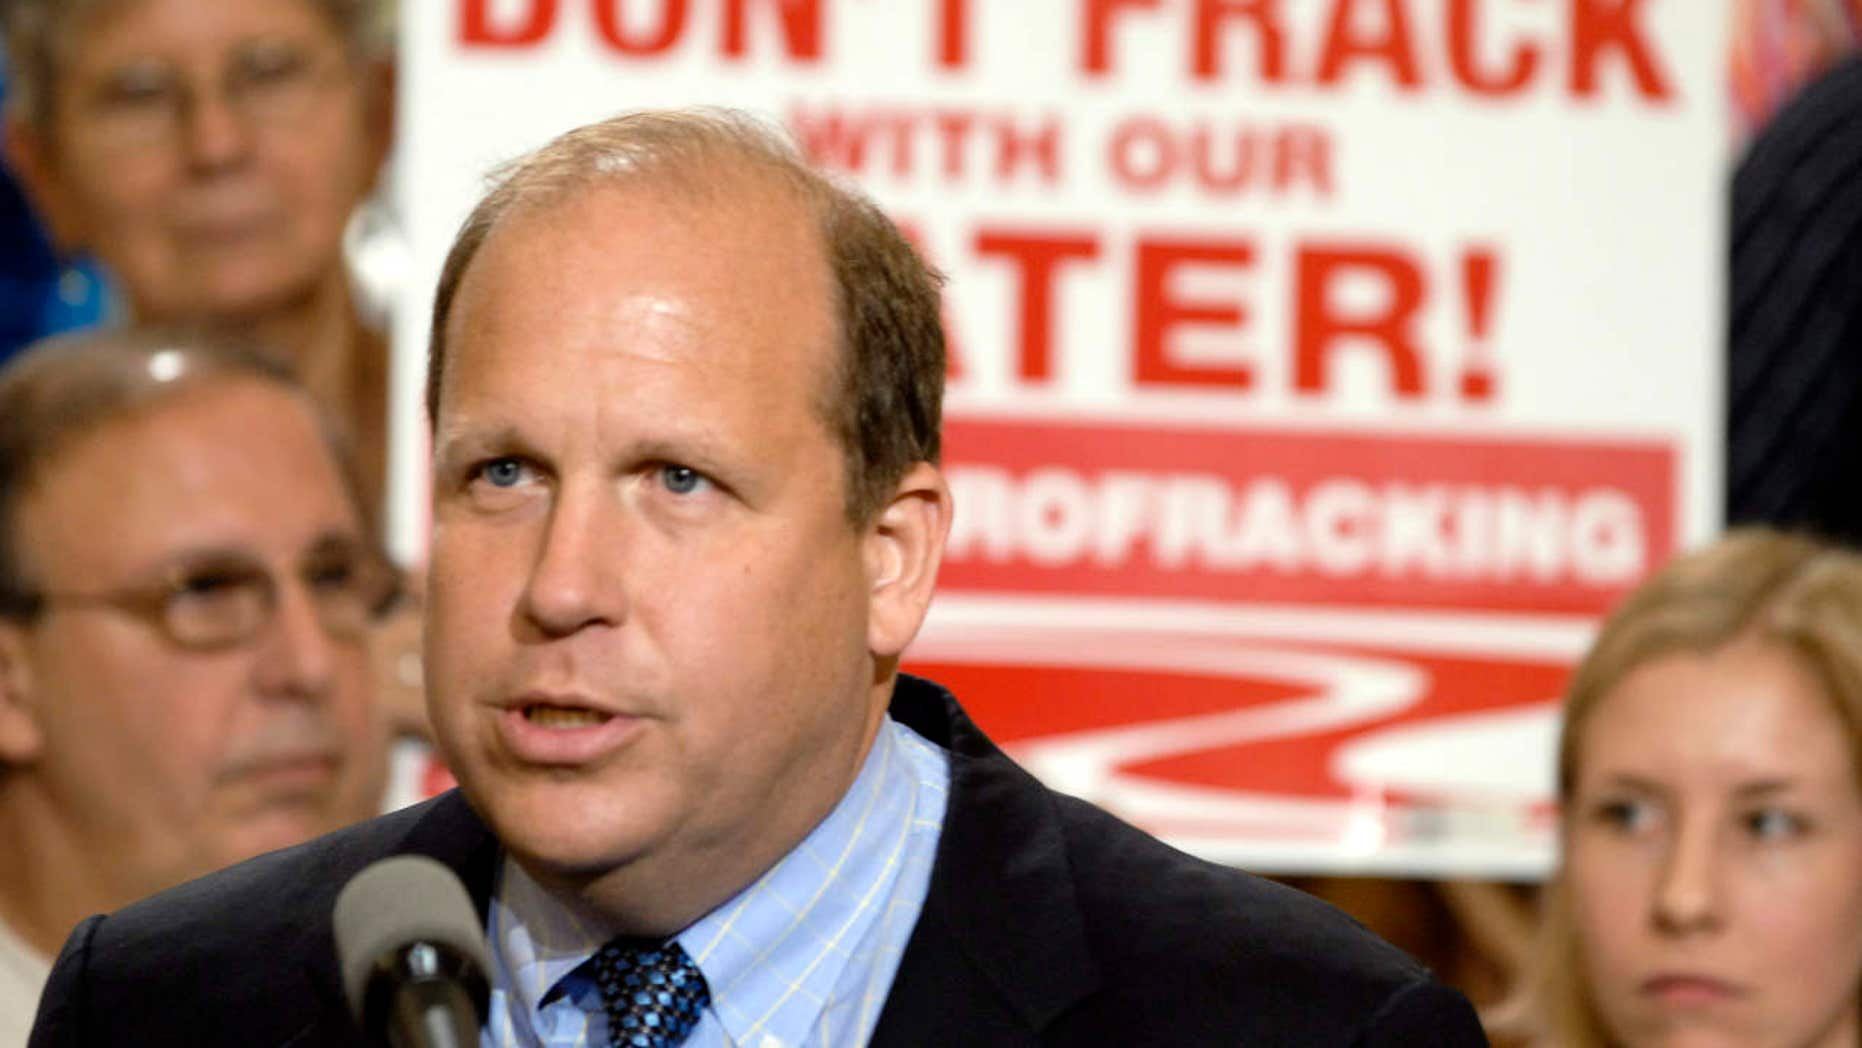 FILE - In this June 7, 2011, file photo, state Sen. Daylin Leach, D-Montgomery, addresses a host of environmental and community groups gathered for a rally in the state capitol against gas drilling in the Marcellus Shale natural gas formation in Harrisburg, Pa.